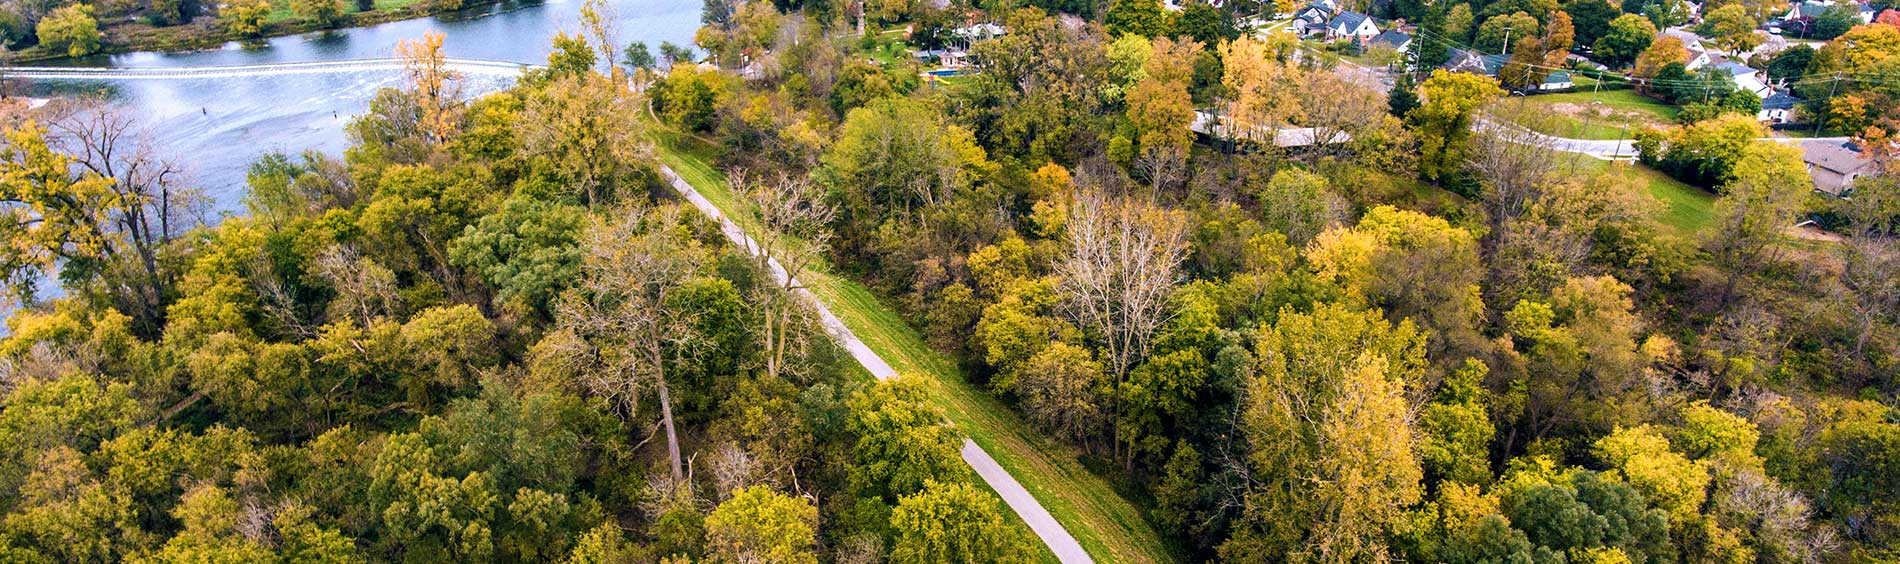 City of Brantford trail from above